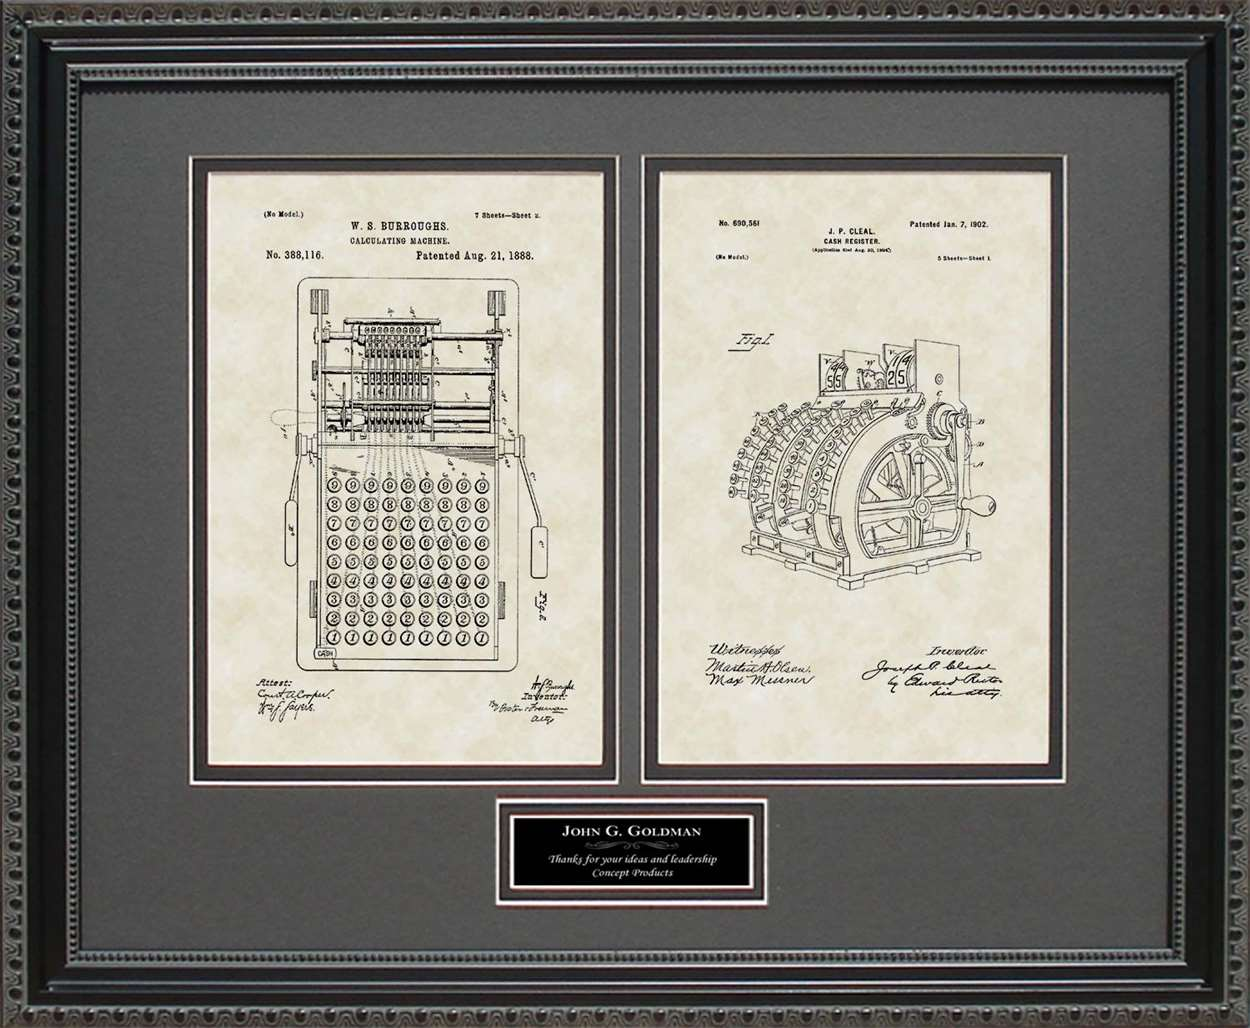 Personalized Calculator & Cash Register Patents, 16x20